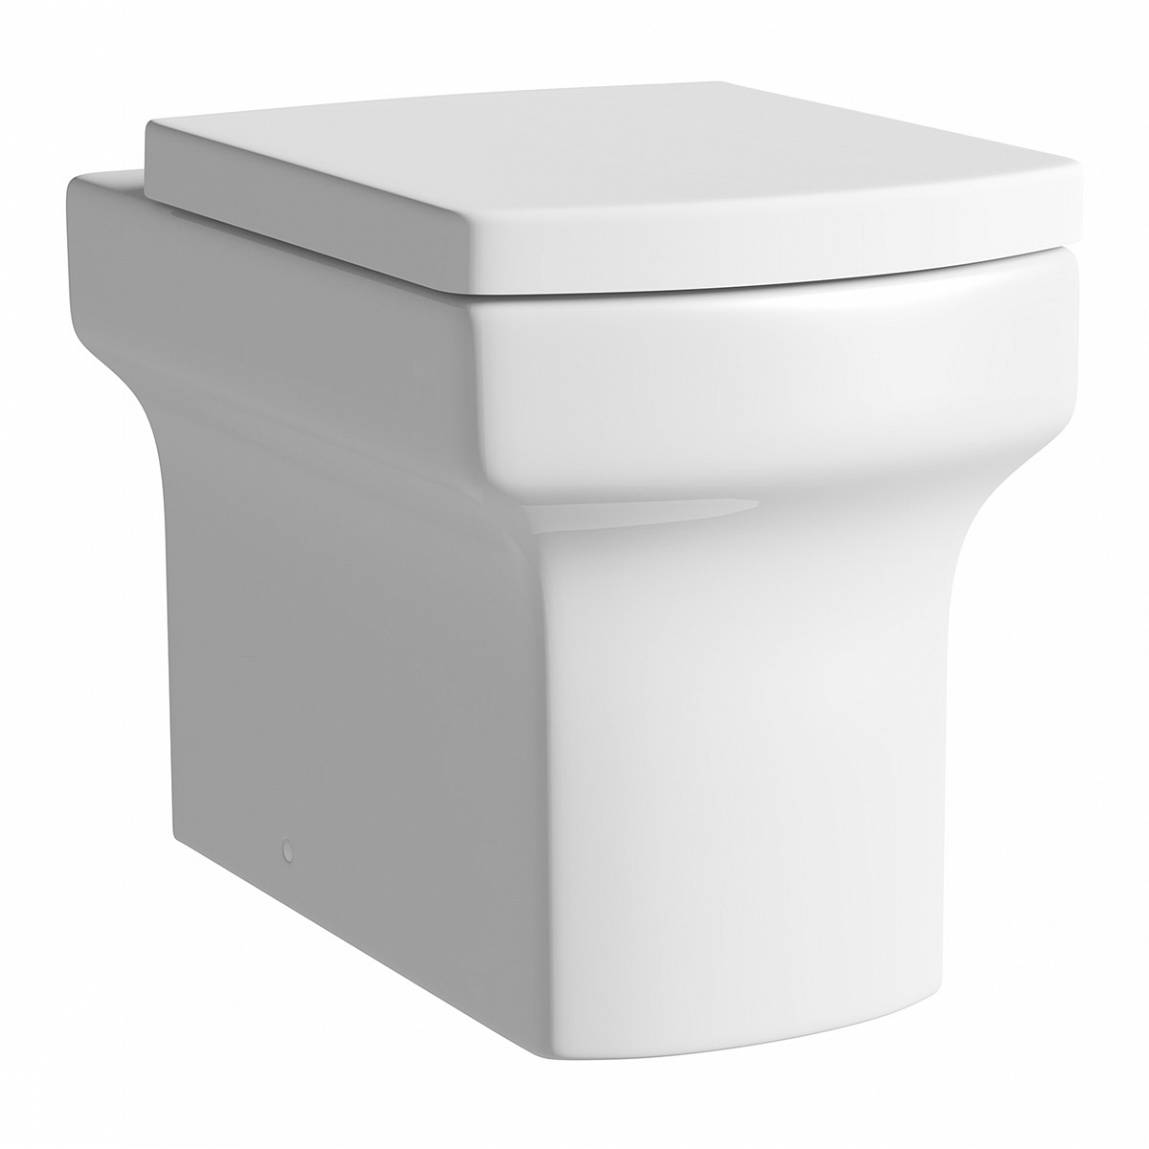 Image of Vermont Back to Wall Toilet inc Luxury Soft Close Seat